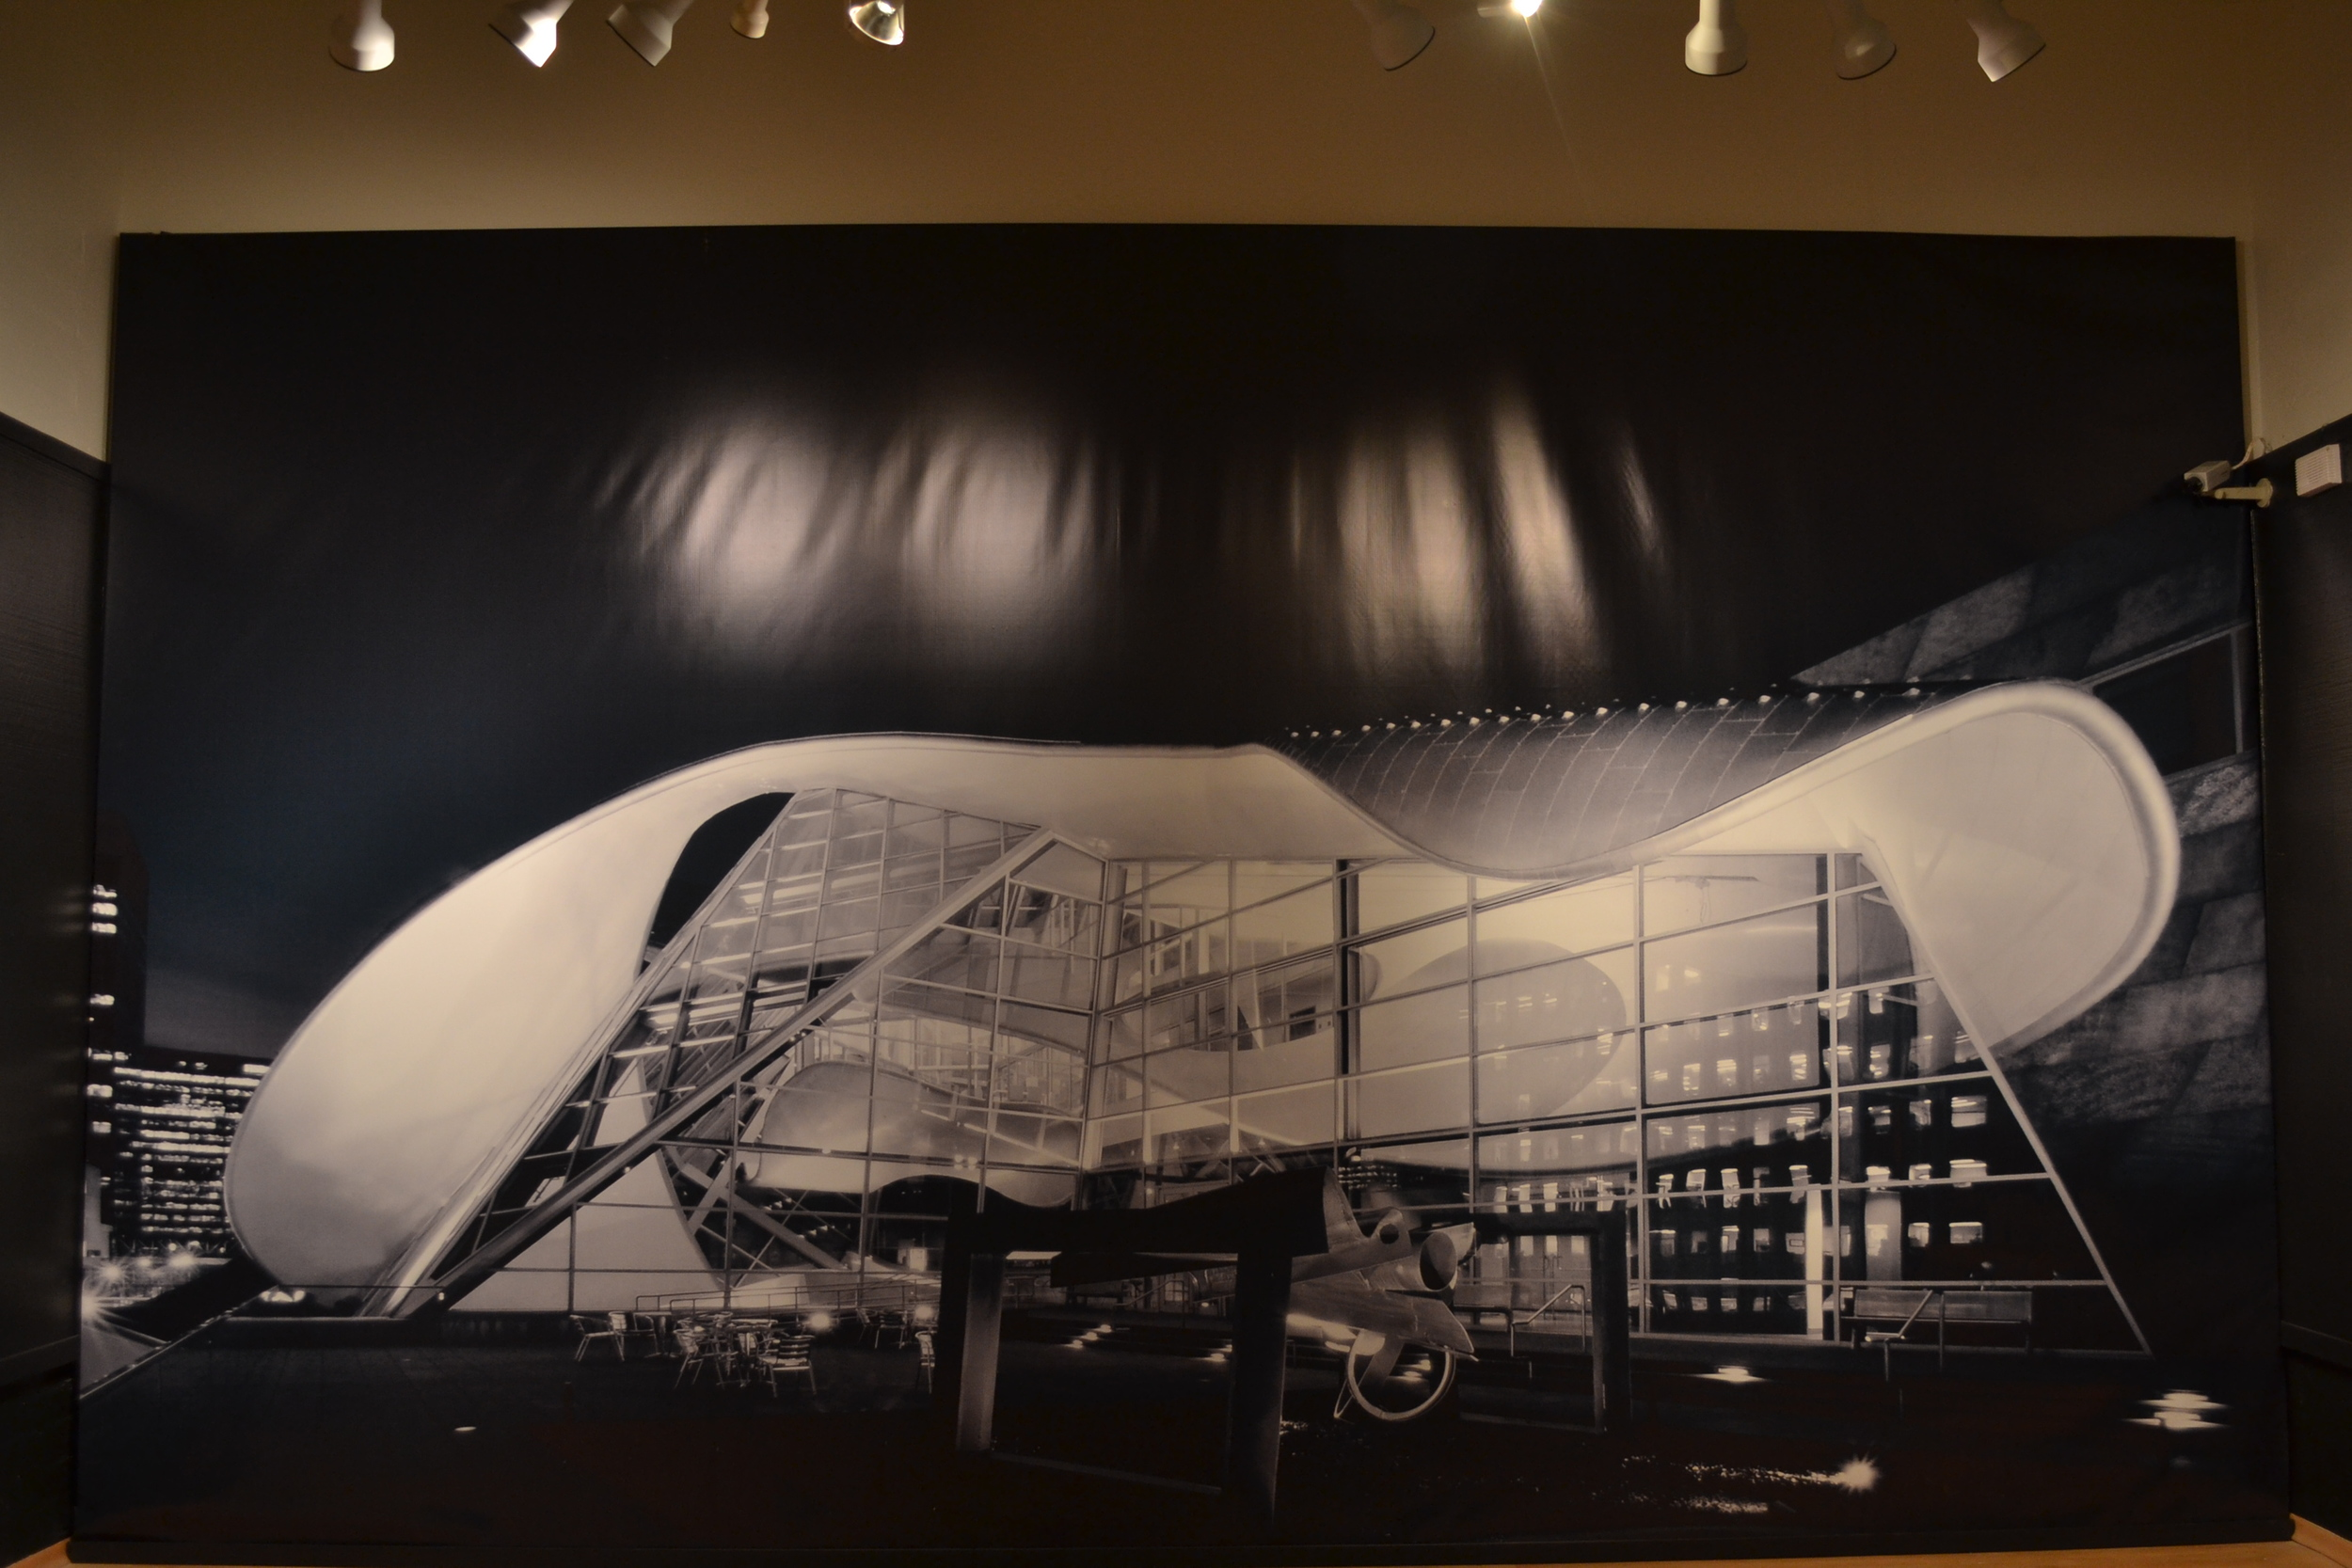 Vinyl Image of Alberta Gallery of Art by Randall Stout in the Bakersfield Museum of Art.